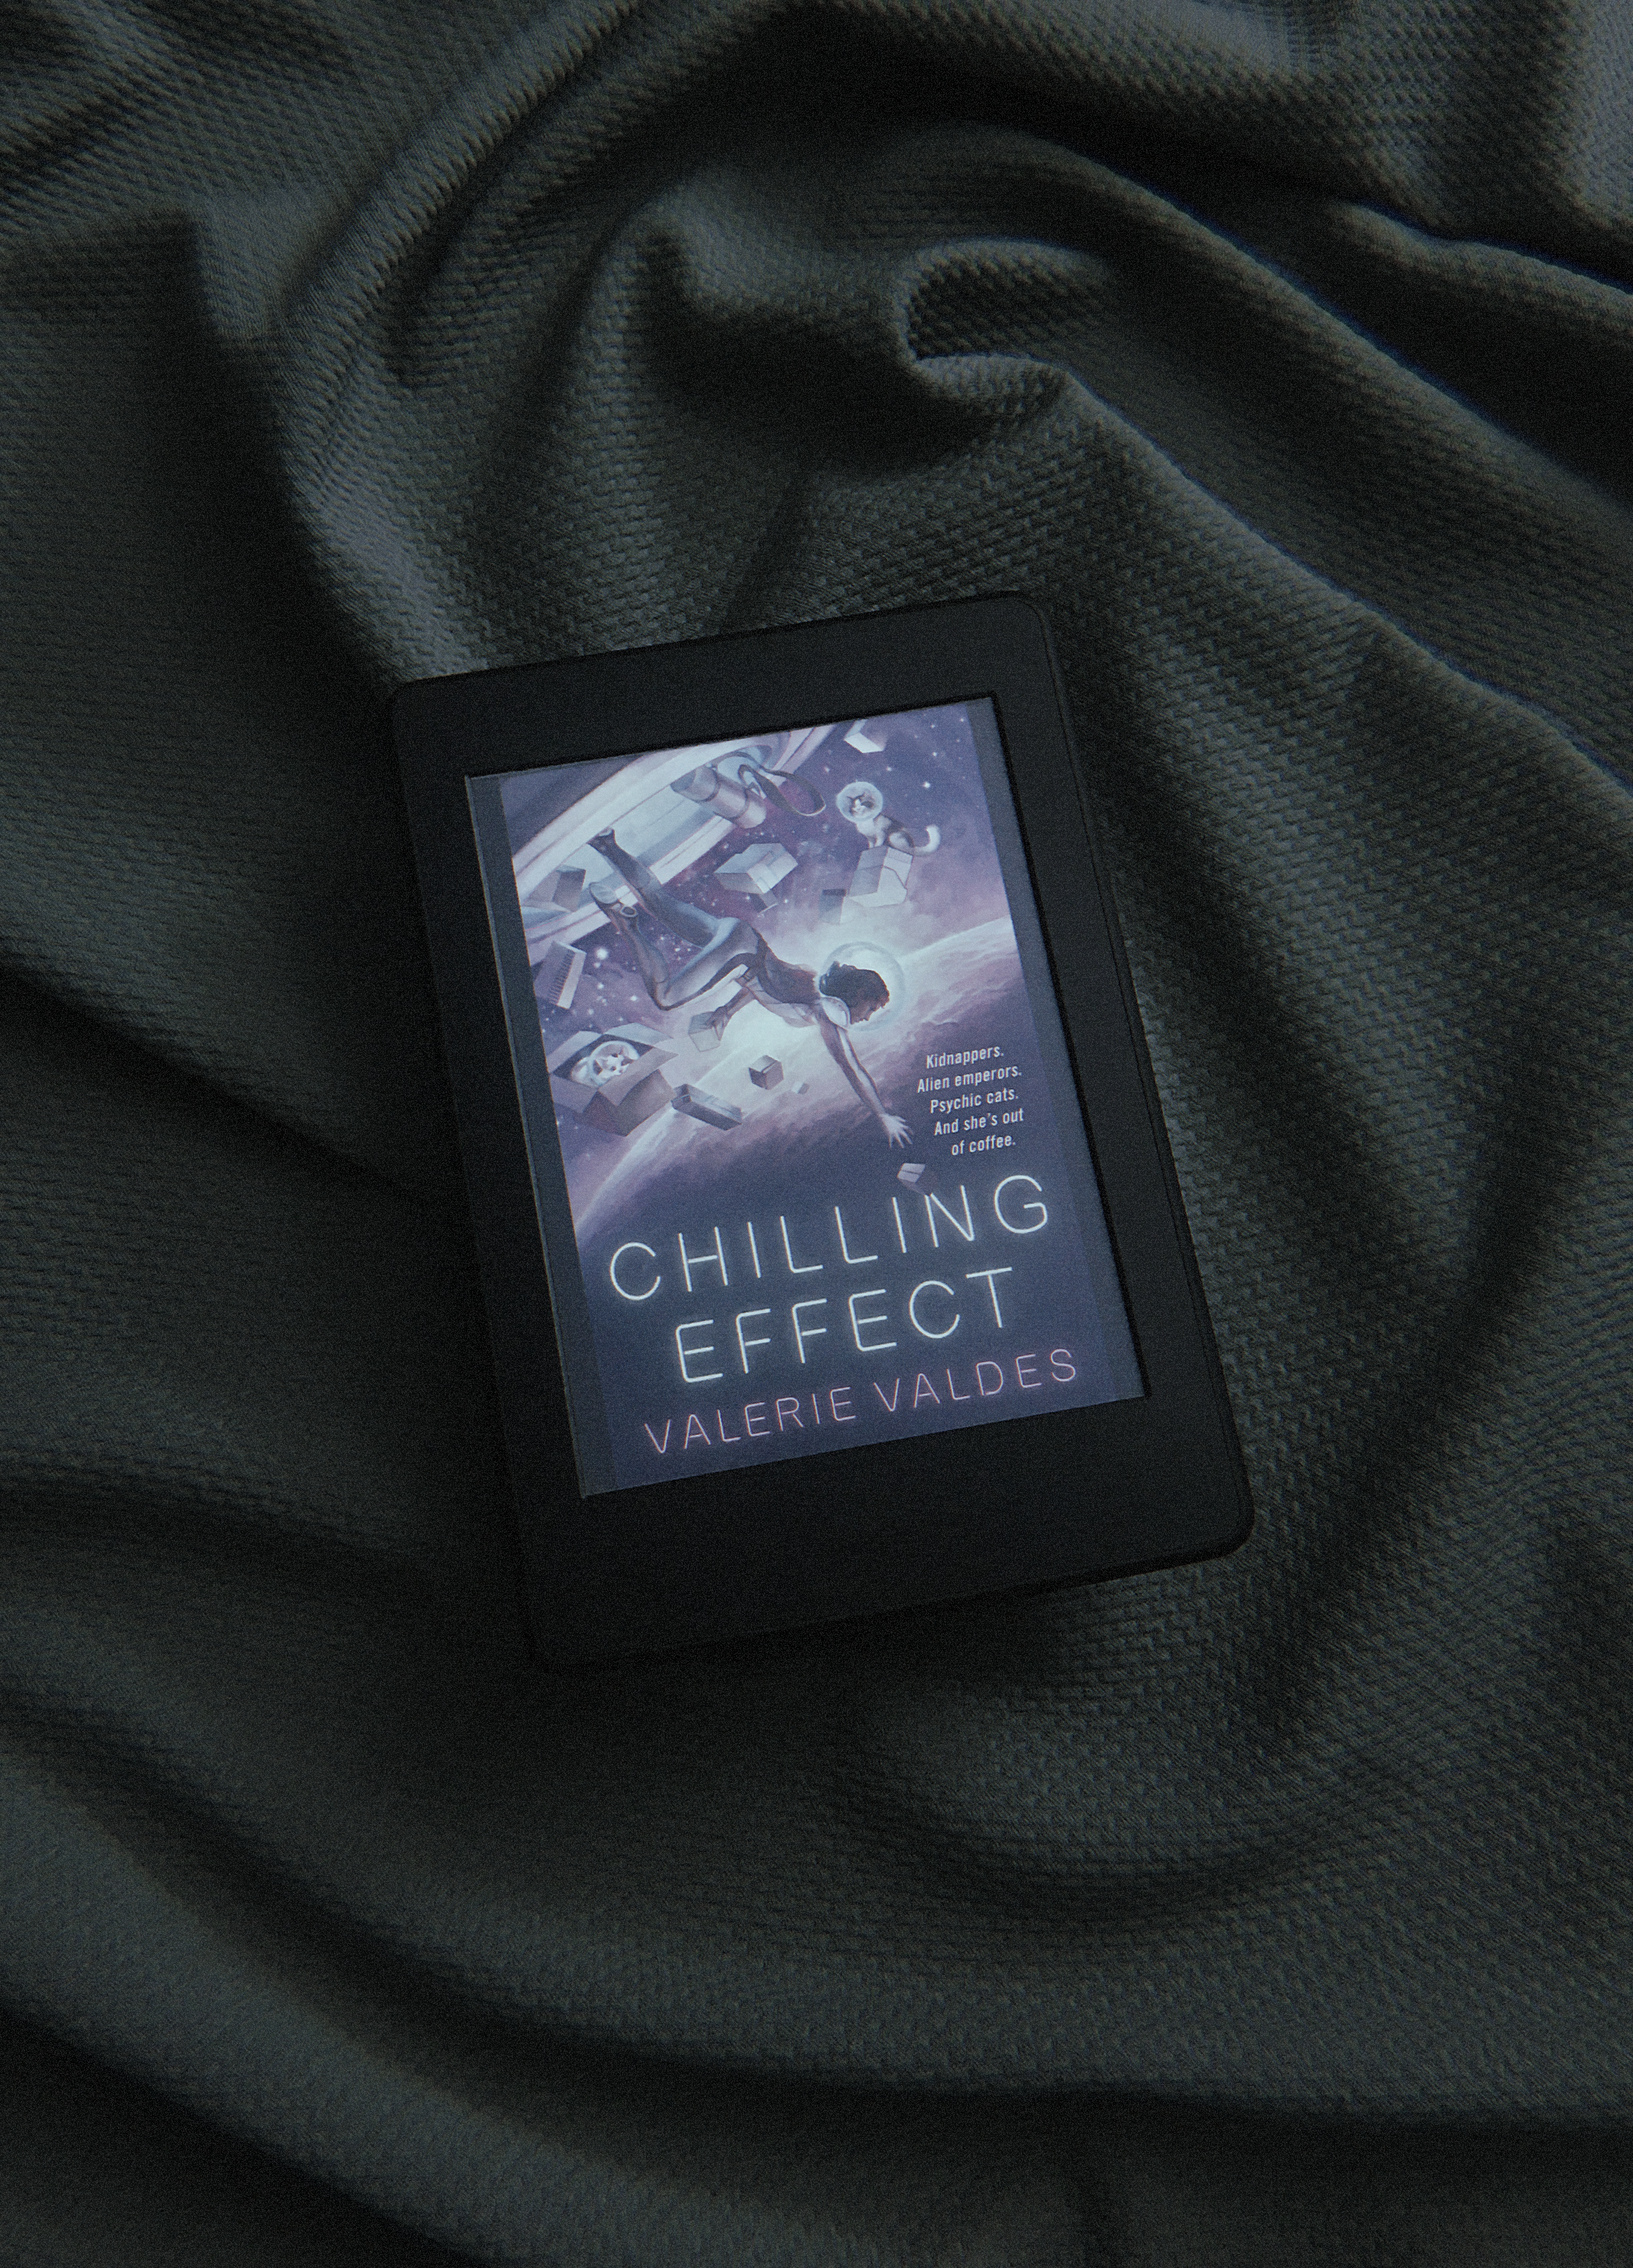 43 chilling effect